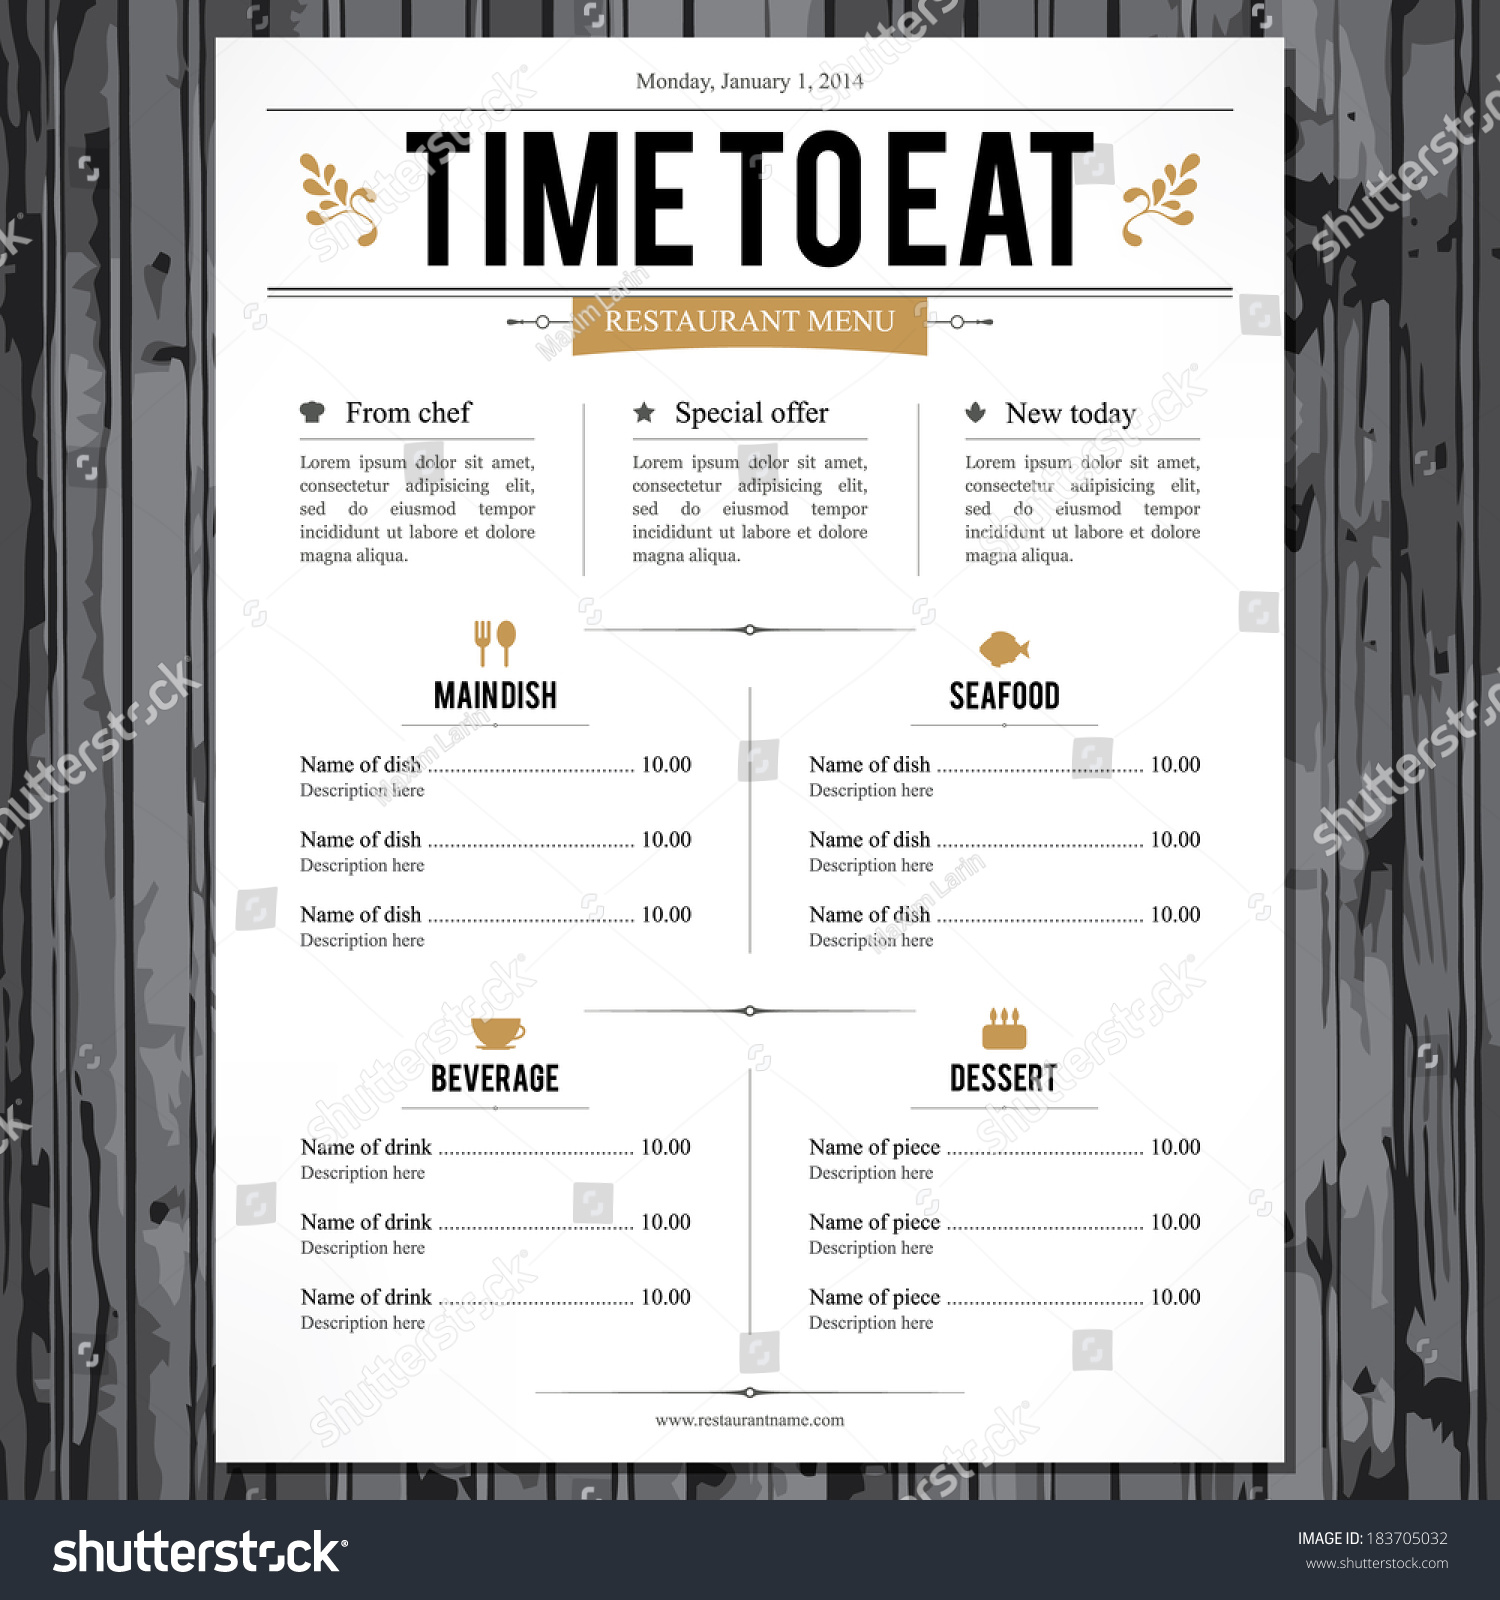 Restaurant Menu Design Stock Vector 183705032 - Shutterstock